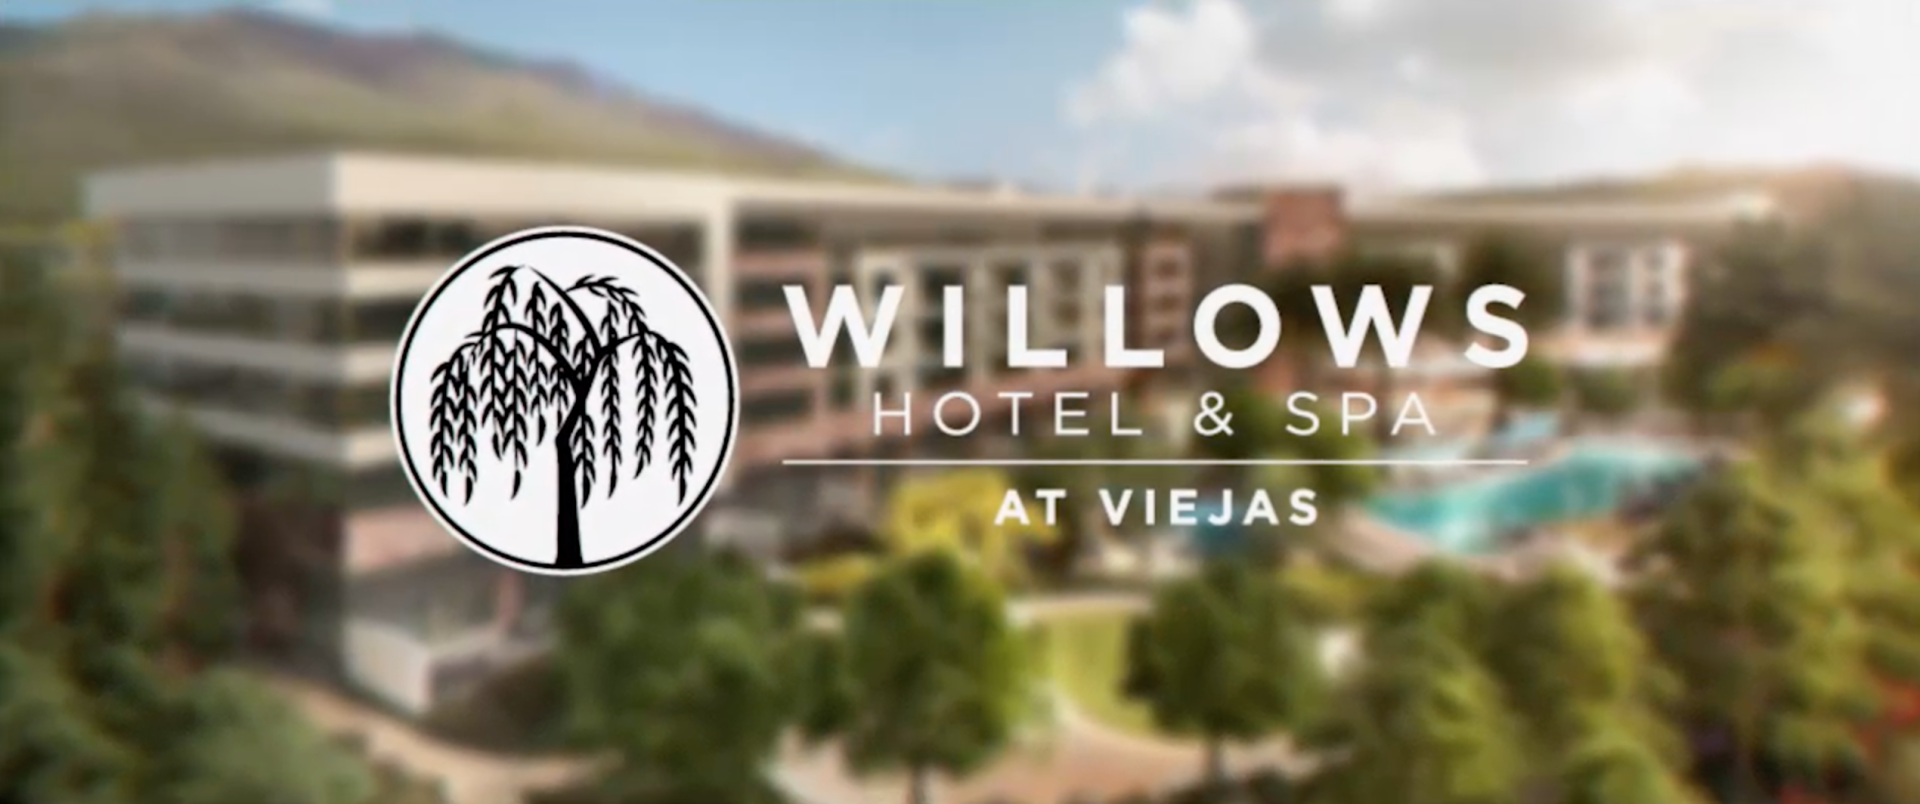 Willows-Hotel-and-Spa-w1920.png